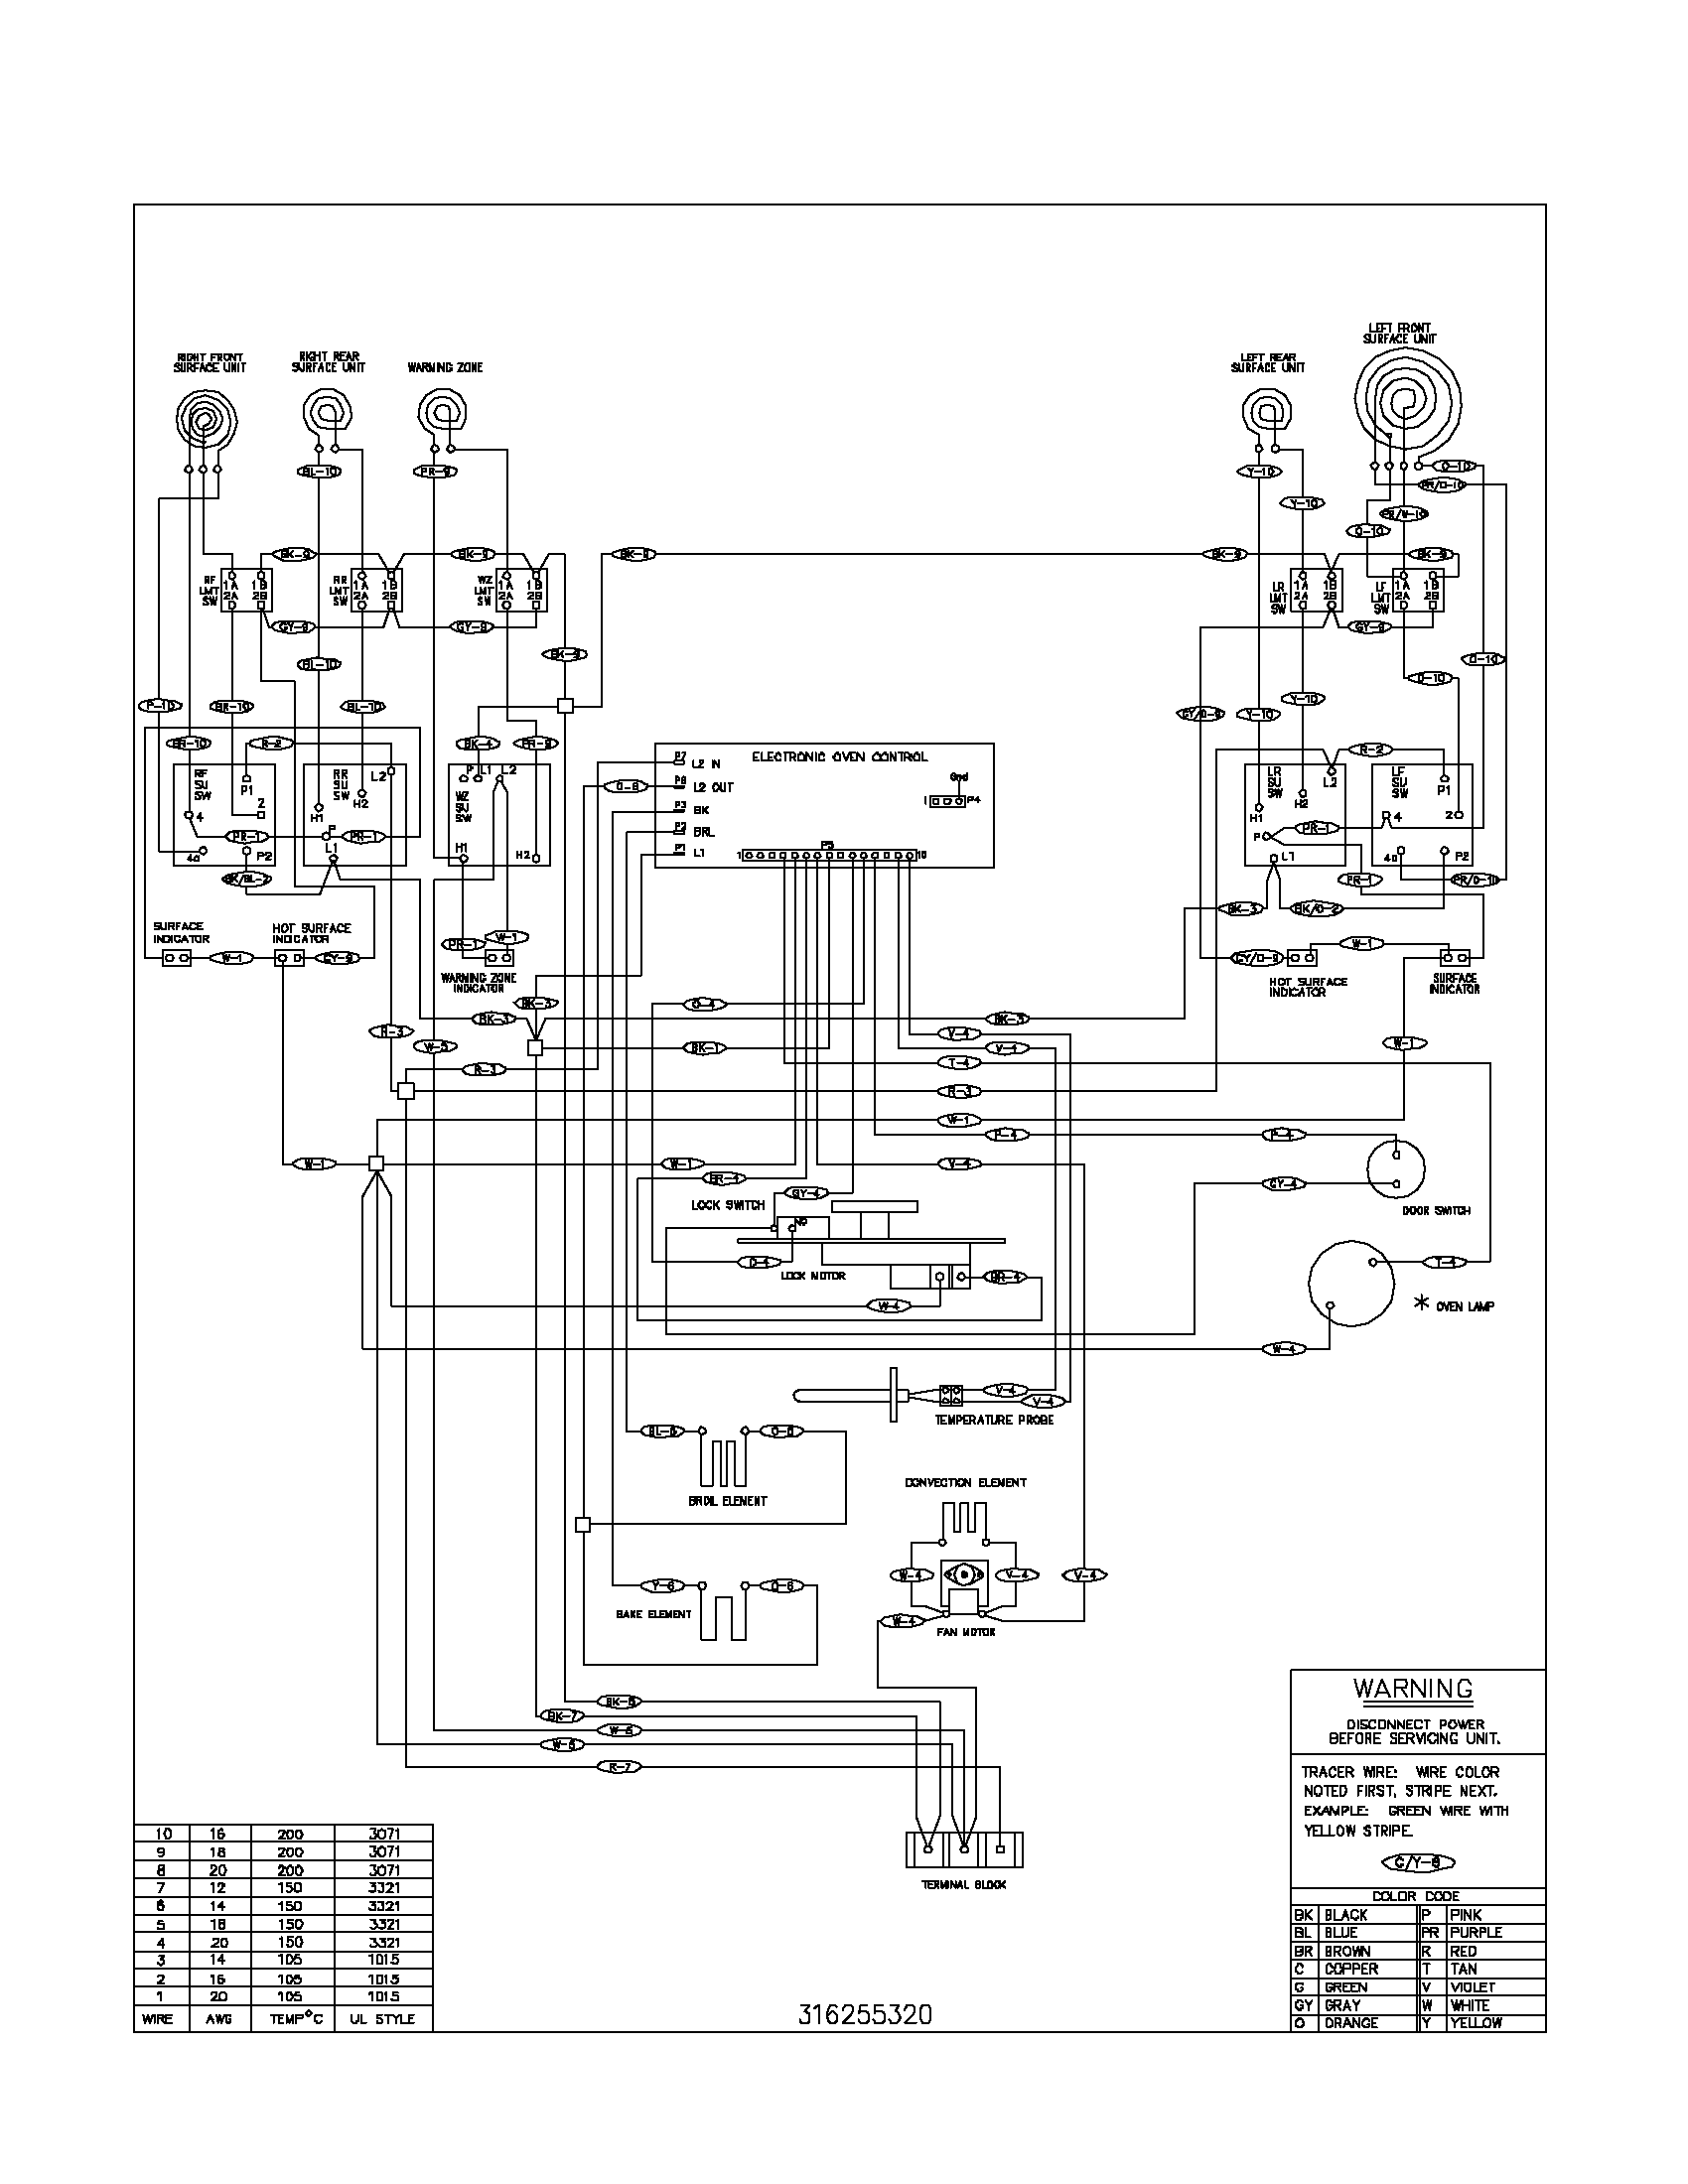 wiring diagram parts ge monogram oven wiring diagram on ge download wirning diagrams oven wiring schematic at edmiracle.co